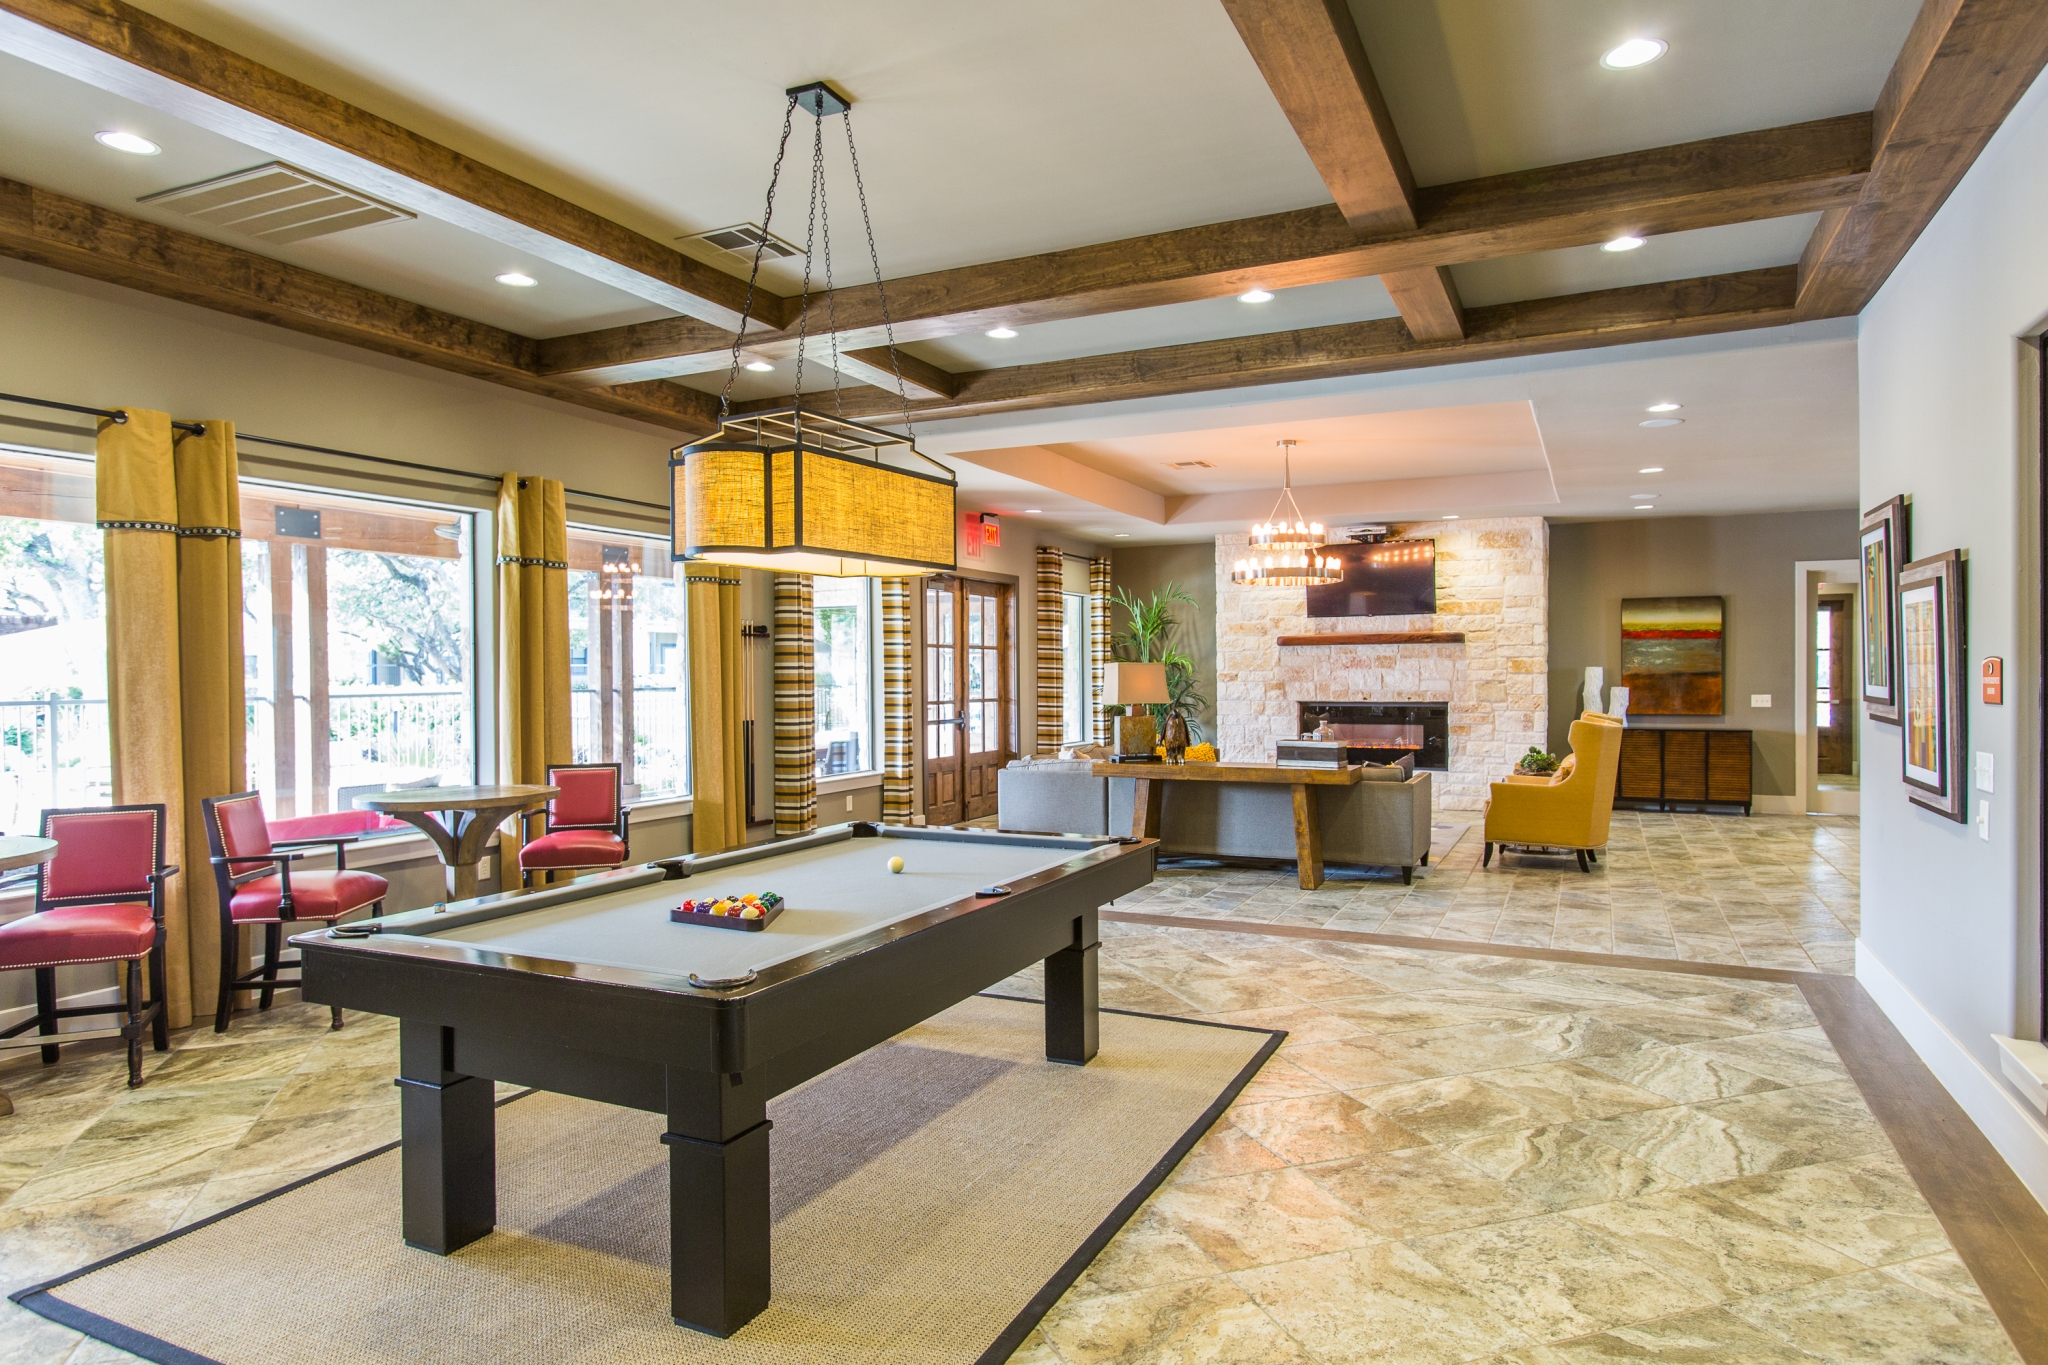 Pool Table and Seating in Clubhouse